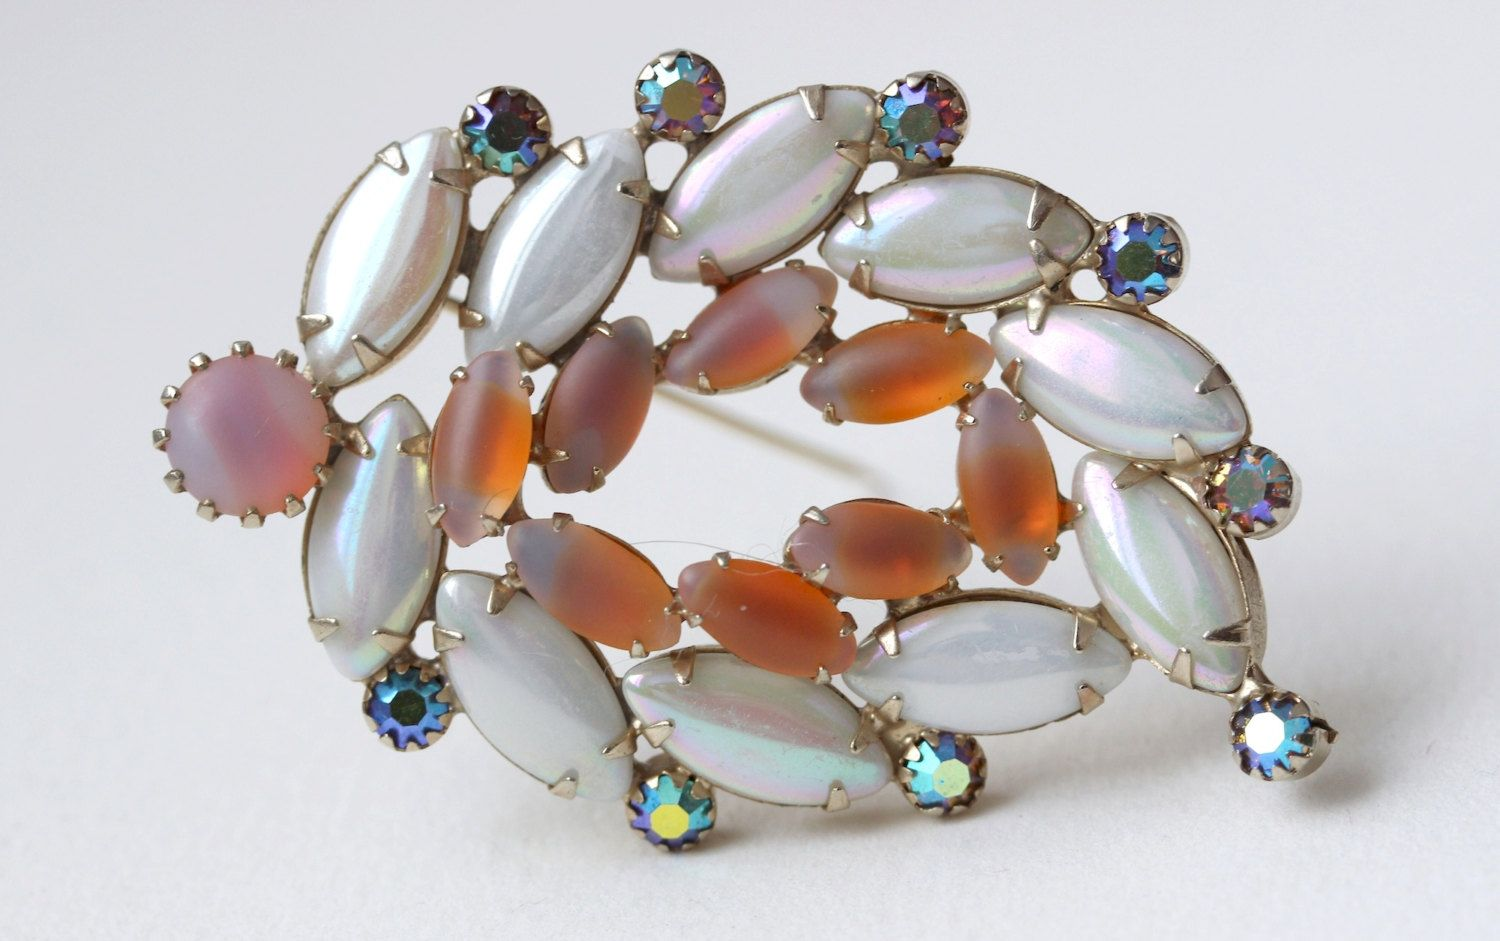 1960s Continental Rhinestones Brooch Pin Made In Canada By Oselavy Vintage Jewelry Rhinestone Vintage Costume Jewelry